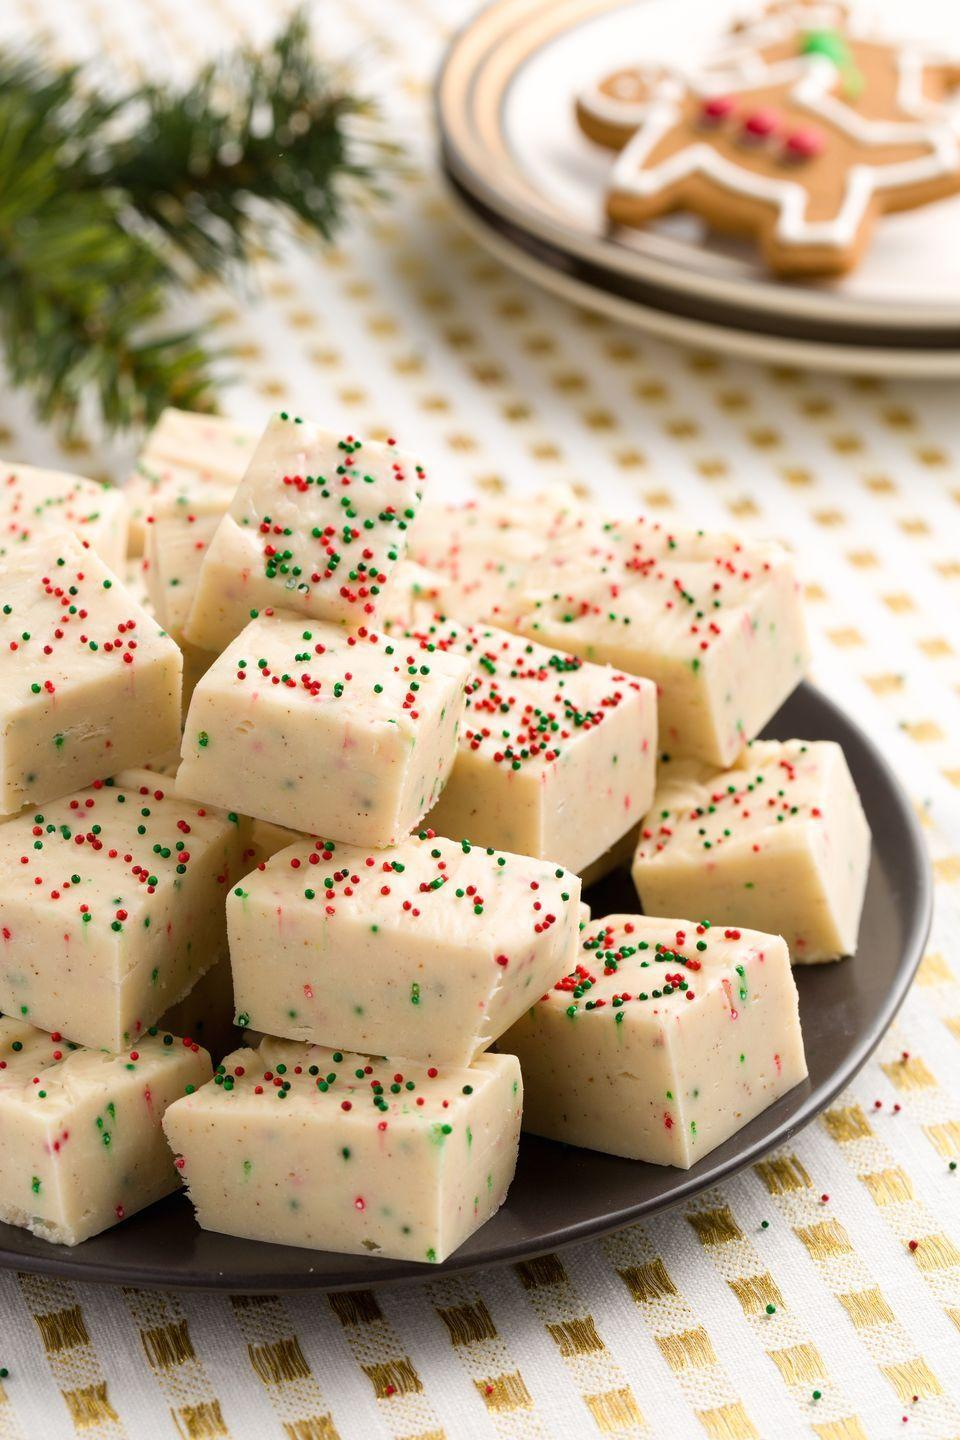 "<p>The sweetest little pieces of fudge you ever did see.</p><p>Get the recipe from <a href=""https://www.delish.com/cooking/recipe-ideas/recipes/a45064/gingerbread-fudge-recipe/"" rel=""nofollow noopener"" target=""_blank"" data-ylk=""slk:Delish"" class=""link rapid-noclick-resp"">Delish</a>.</p>"